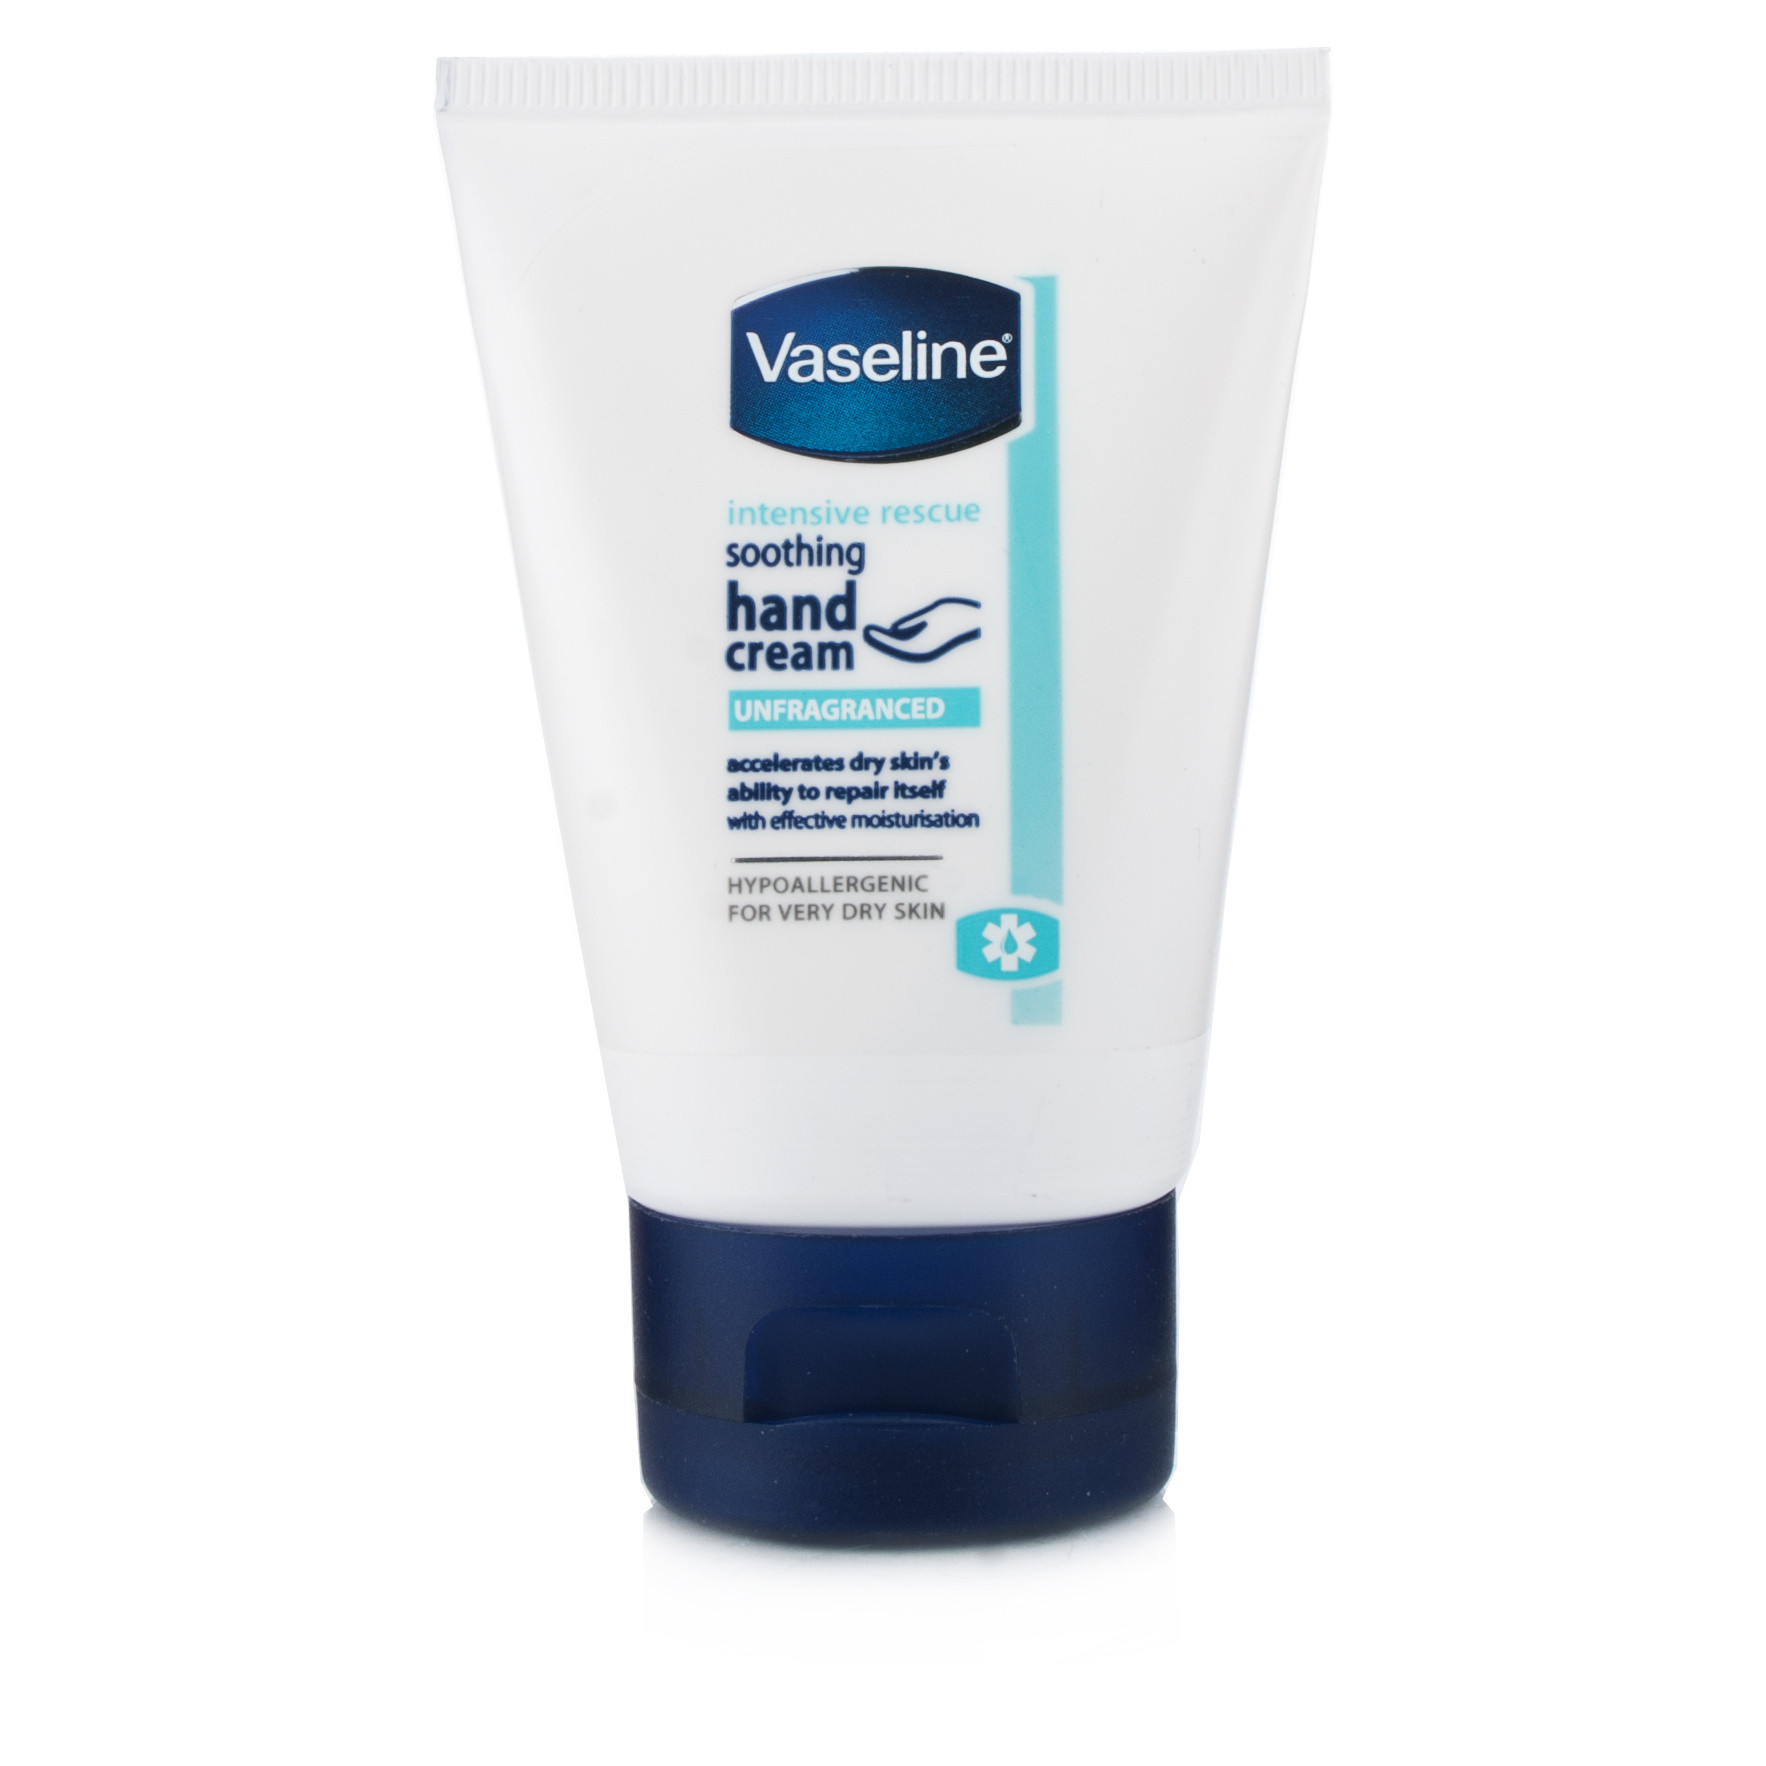 Vaseline Intensive Rescue Soothing Hand Cream